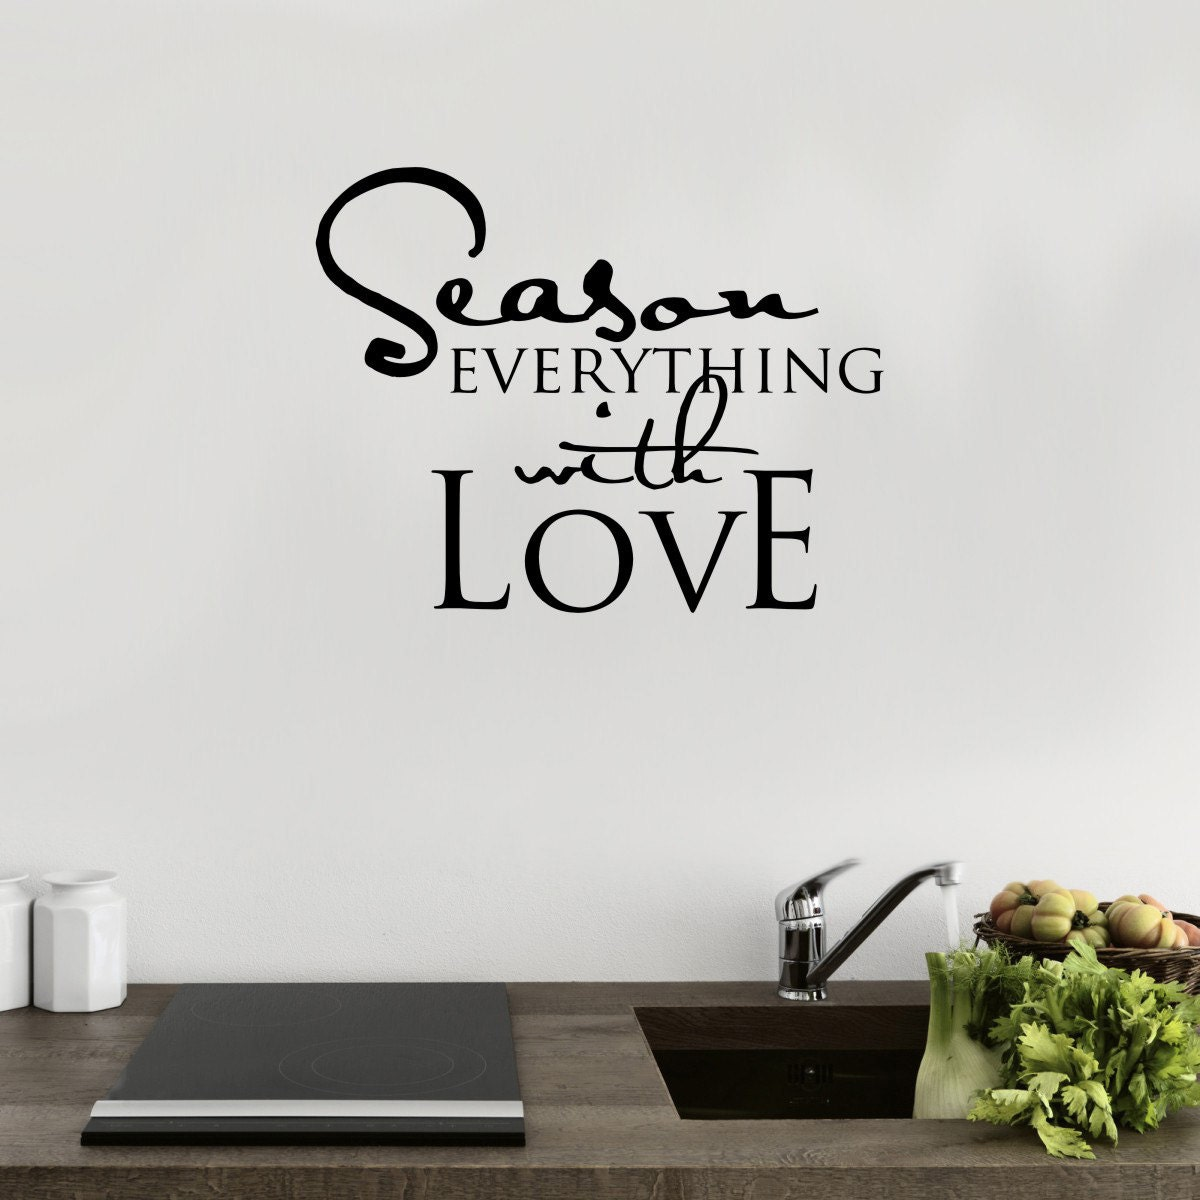 Kitchen Wall Art  Season Everything With Love  Kitchen Wall Decal  Kitchen Decor  Dining Room Decals  Kitchen Quotes  QU100